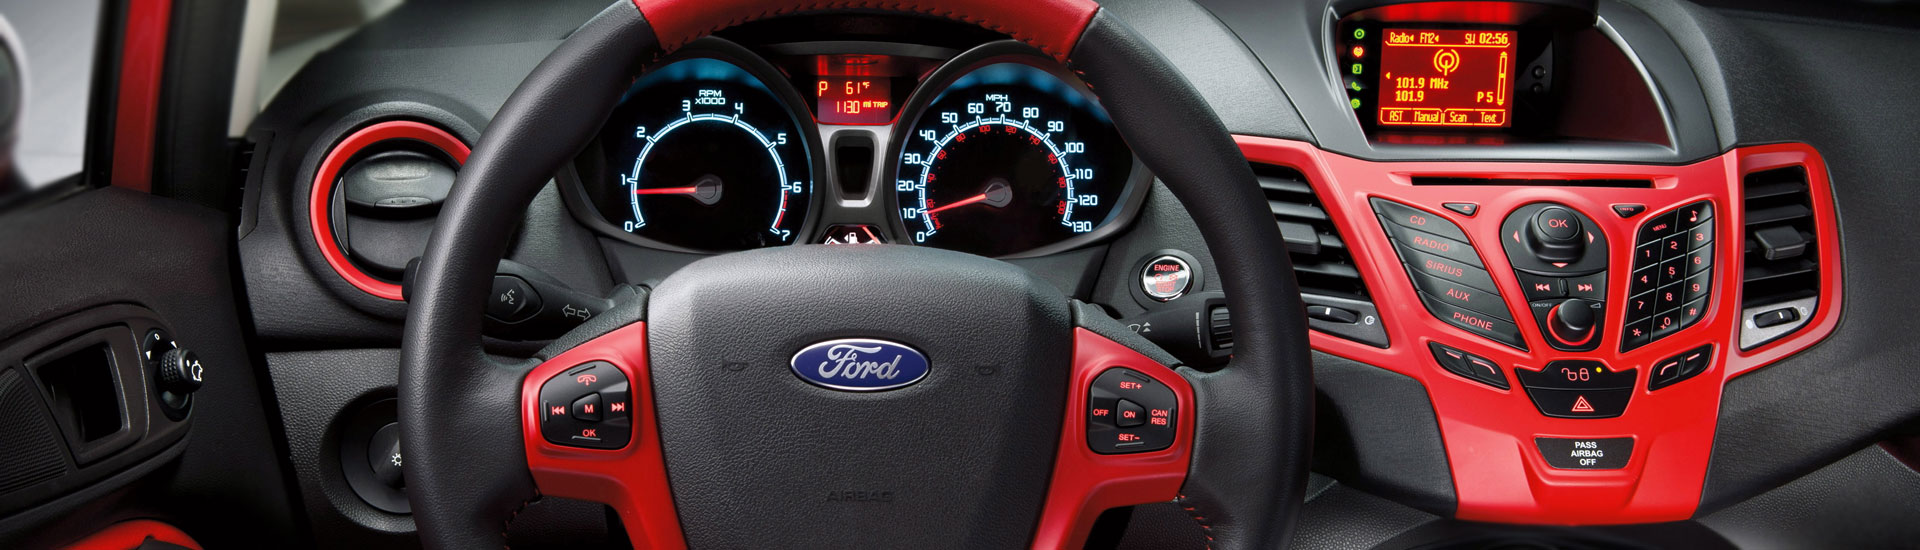 2002 Ford Ranger Custom Dash Kits